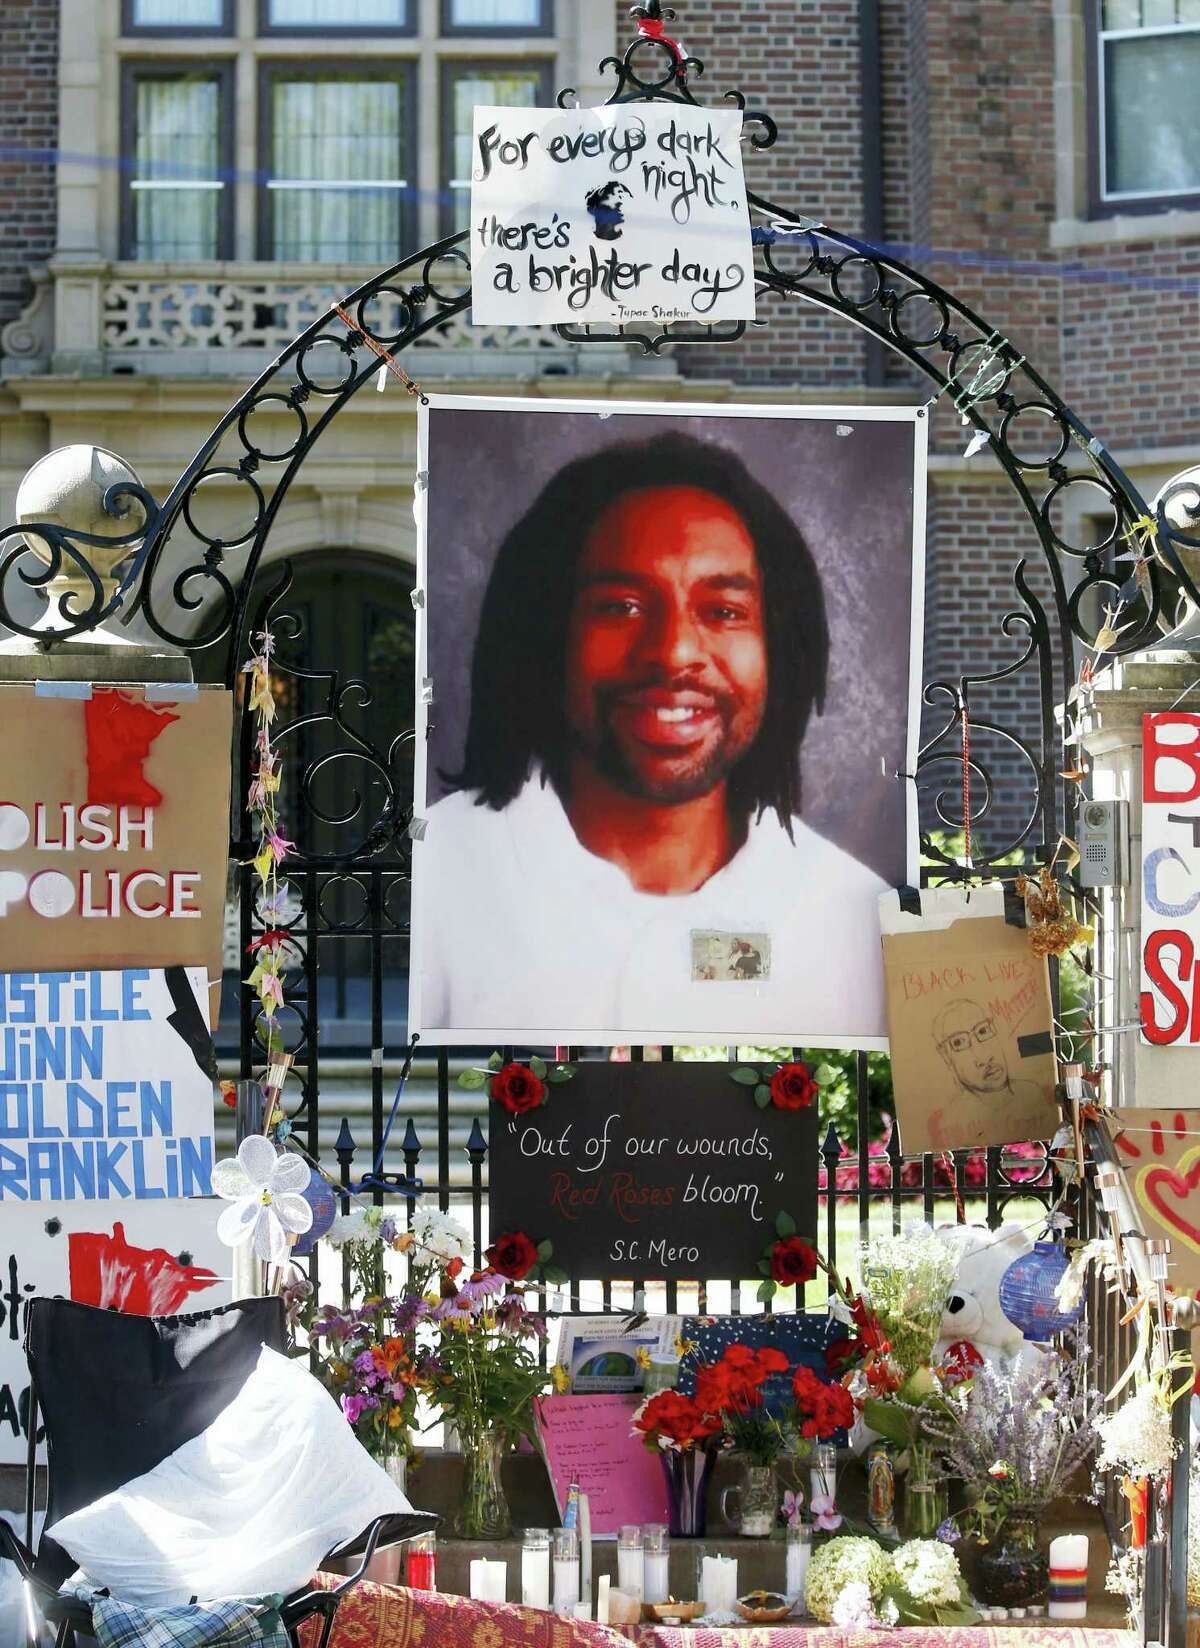 FILE - In this July 25, 2016, file photo, a memorial including a photo of Philando Castile adorns the gate to the governor's residence in St. Paul, Minn., protesting the July 6, 2016 shooting death of Castile by St. Anthony police officer Jeronimo Yanez. Closing arguments began Monday, June 12, 2017 in in a Yanez' manslaughter trial in the fatal shooting of Castile.